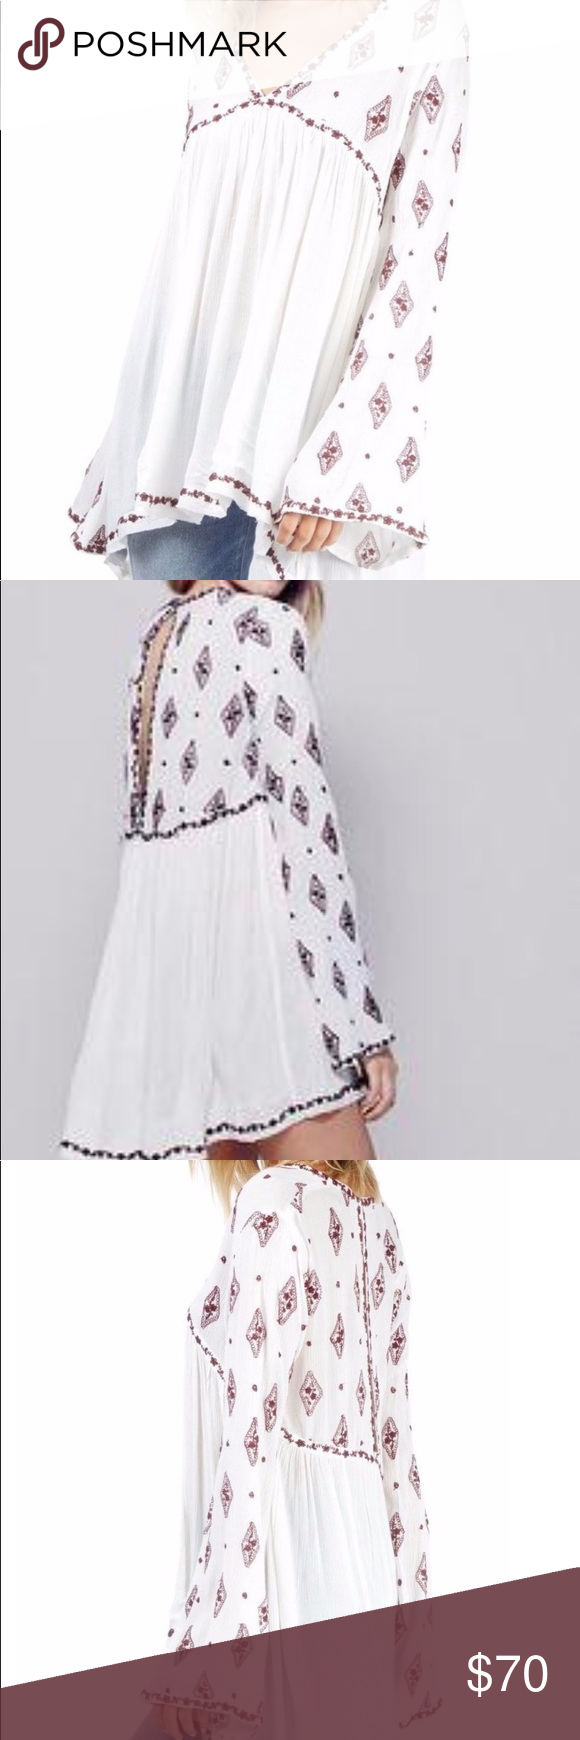 3706d10dd75f Free People Diamond Embroidered Top Free People Diamond Embroidered top.  V-neck longsleeve